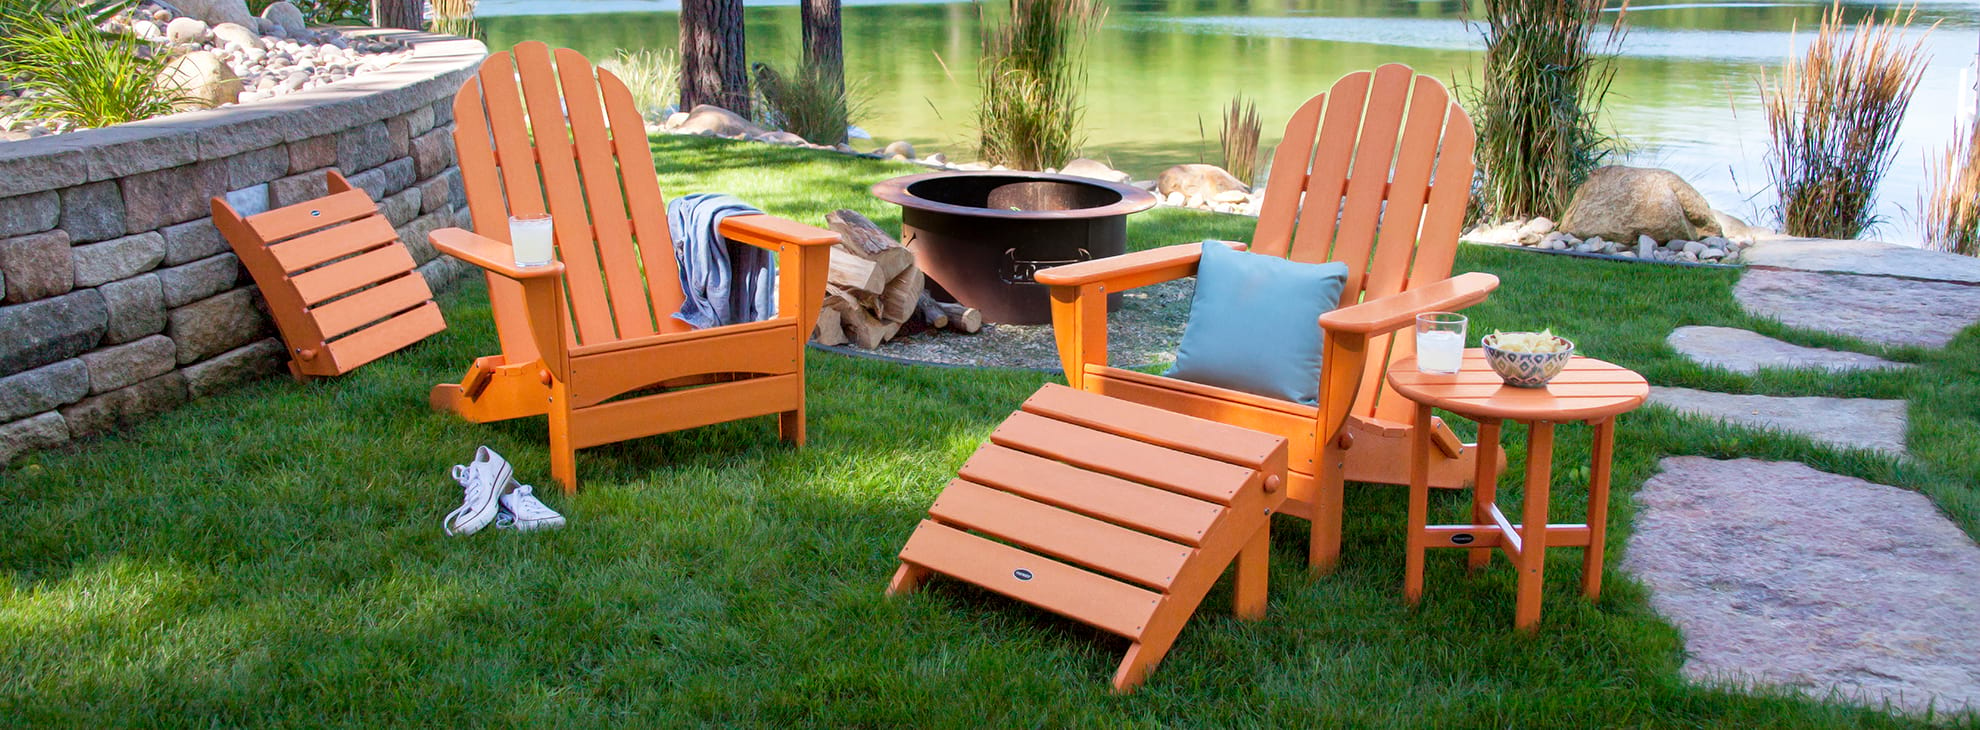 Orange Adirondack Chairs